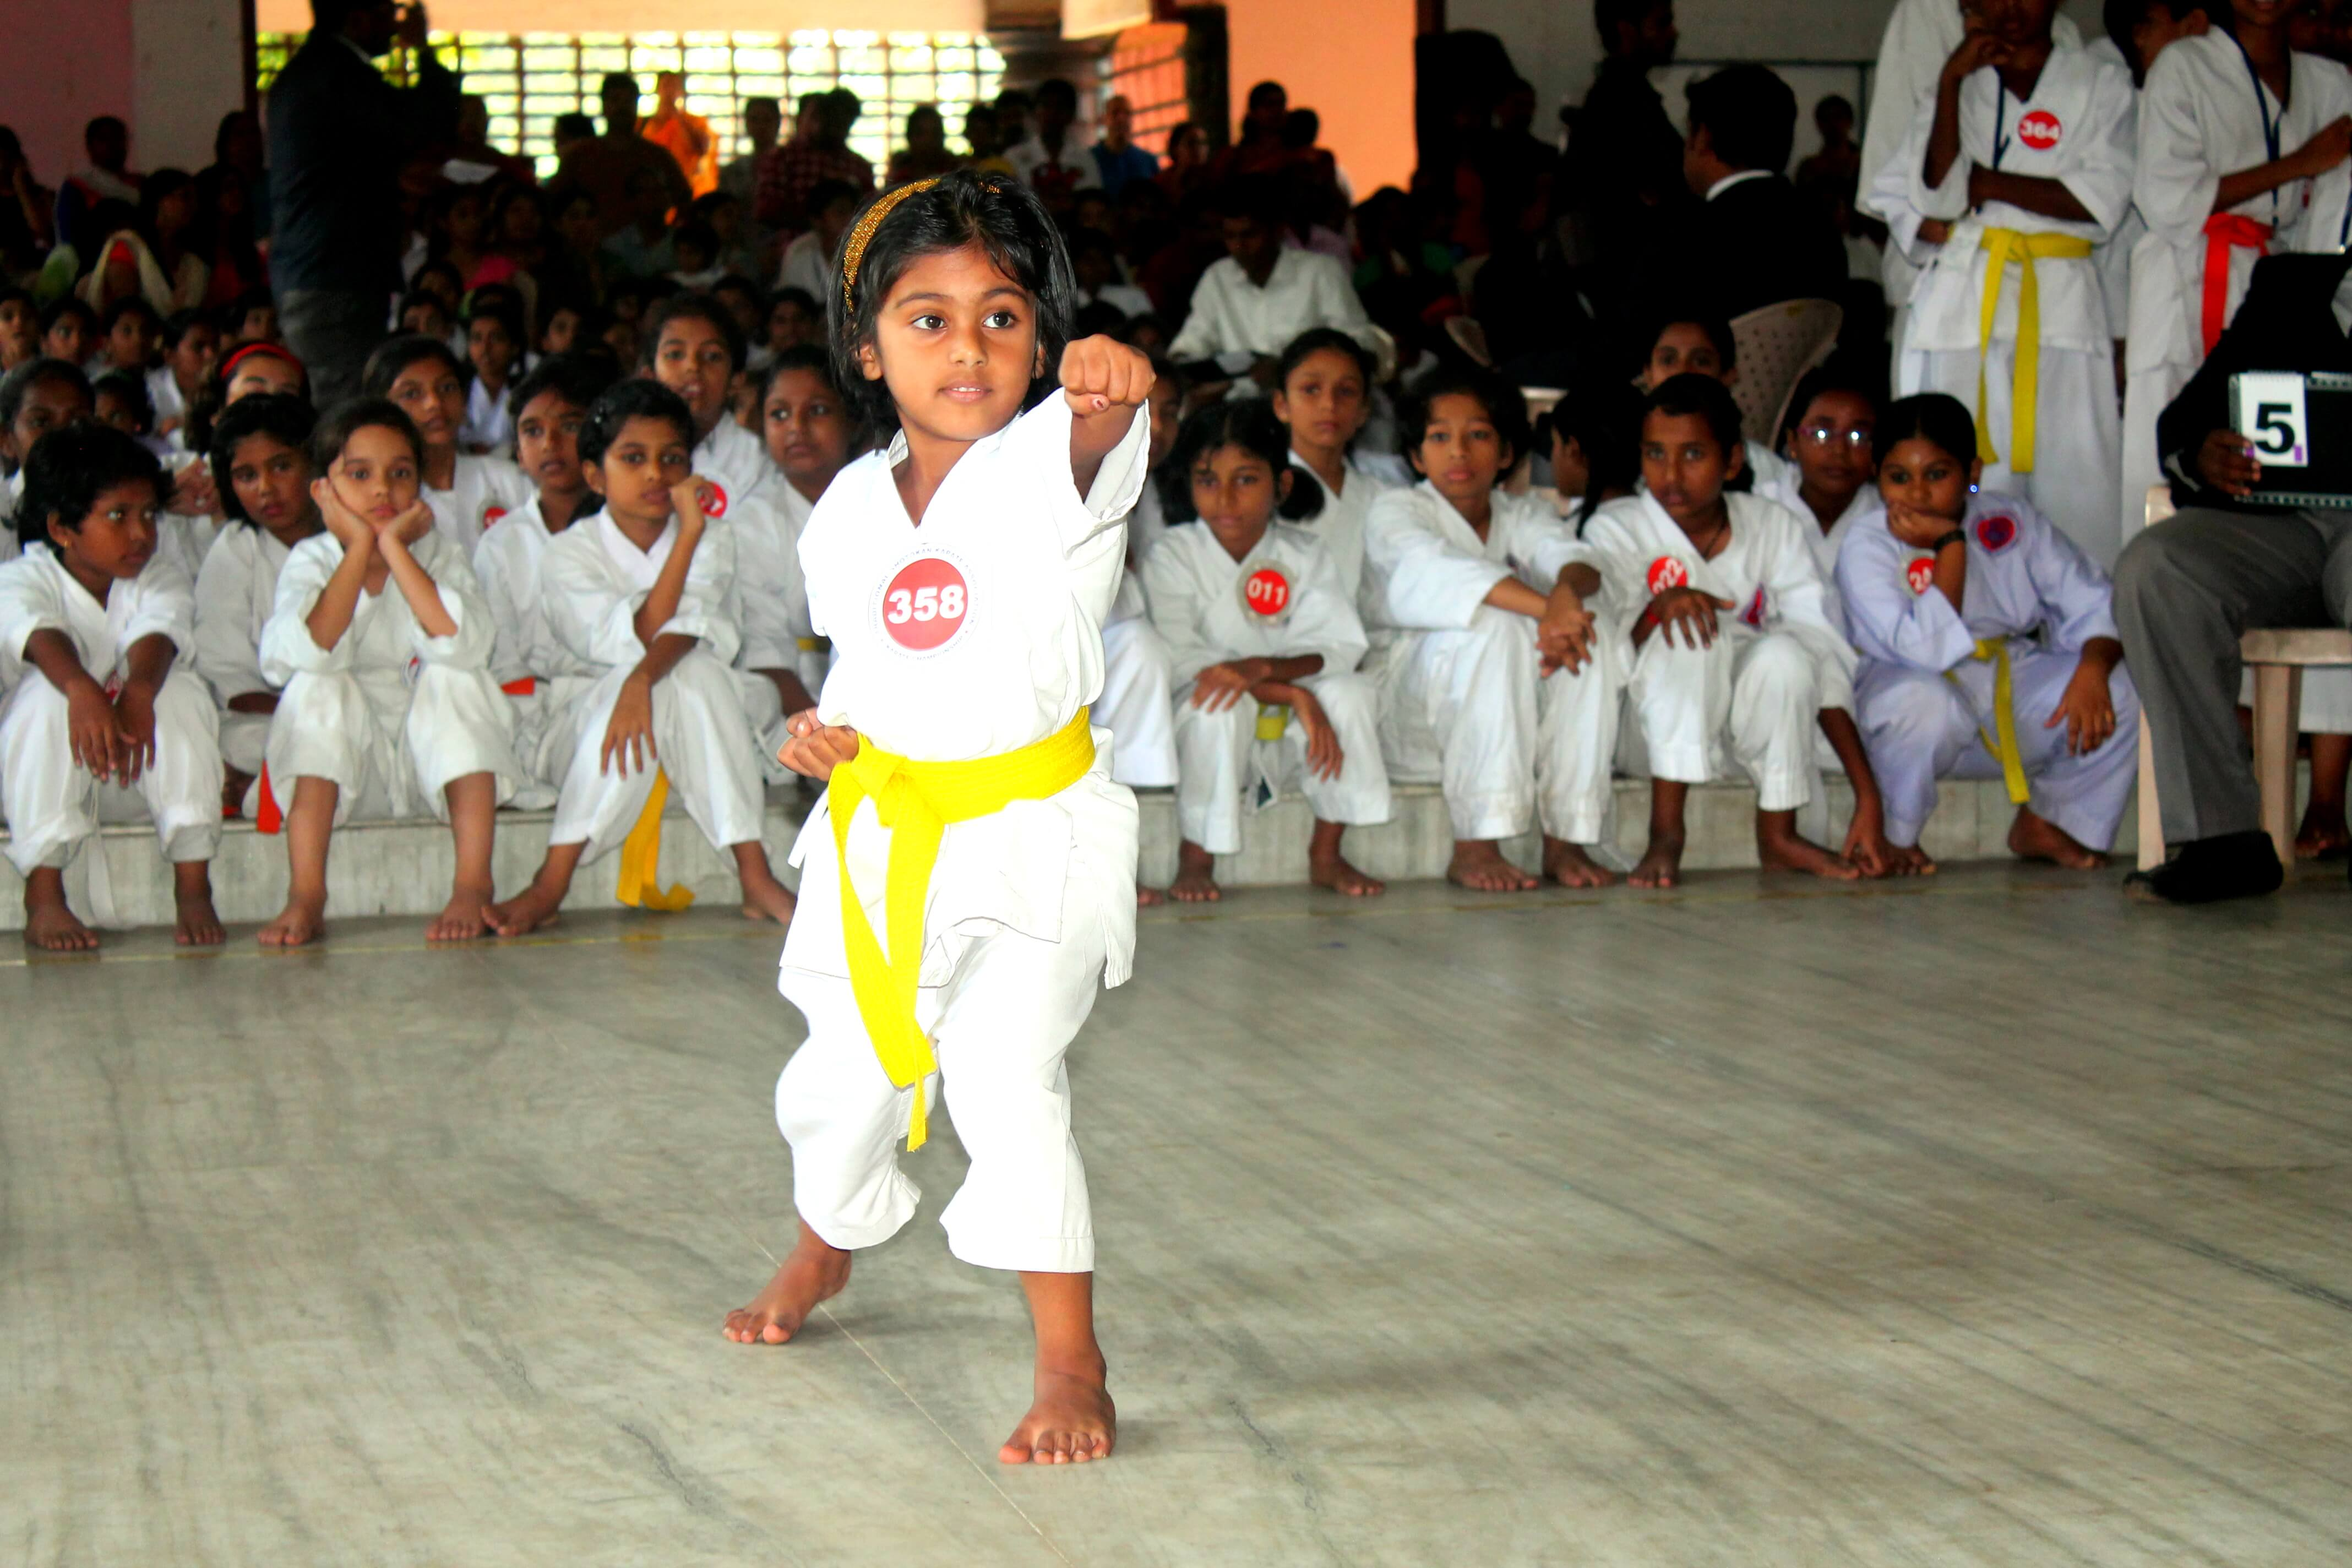 Vaigha, Kata Champion - Below 2nd Std Girls